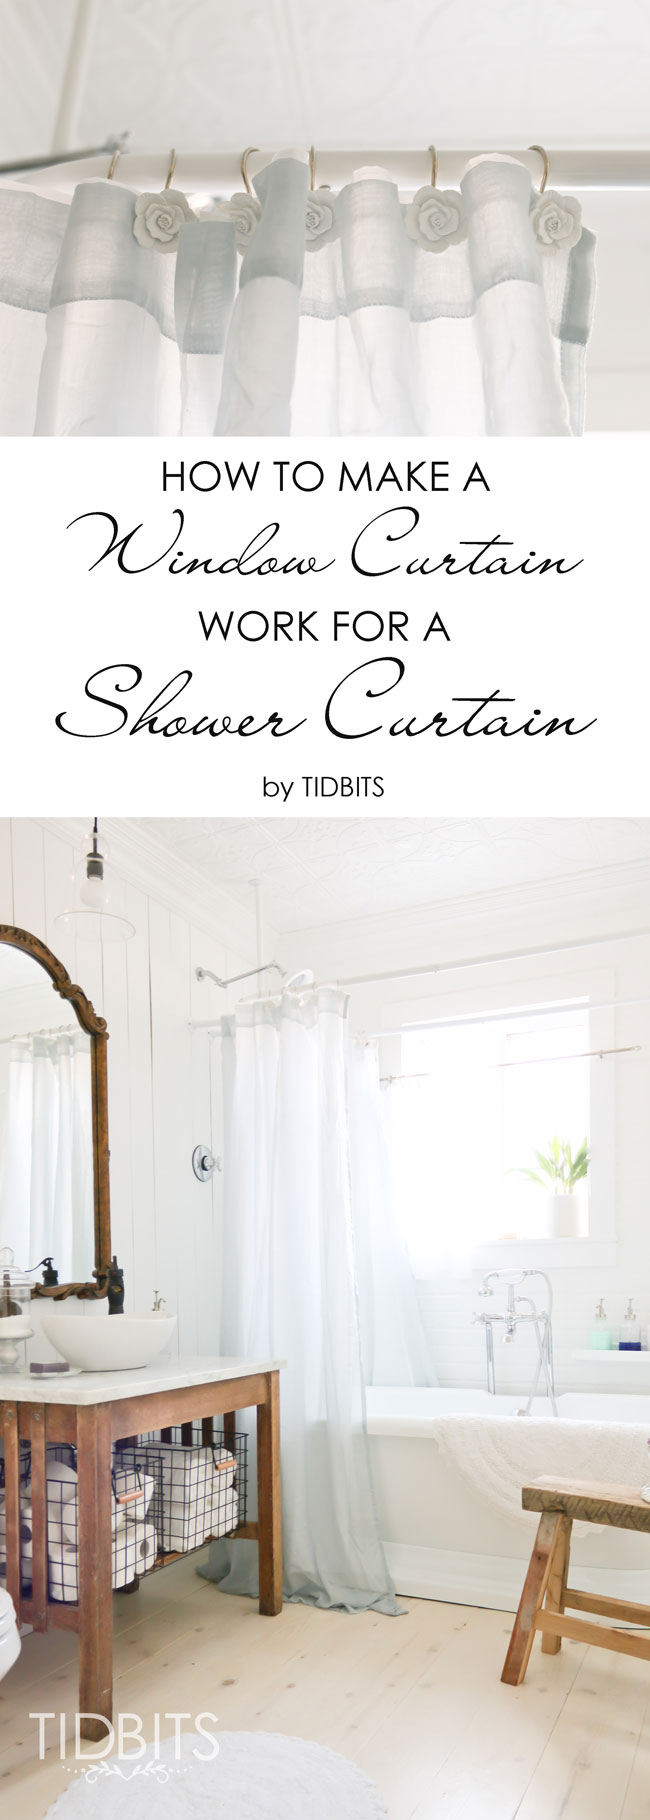 How to make a window curtain work for a shower curtain. Don't limit yourself to the bath section!